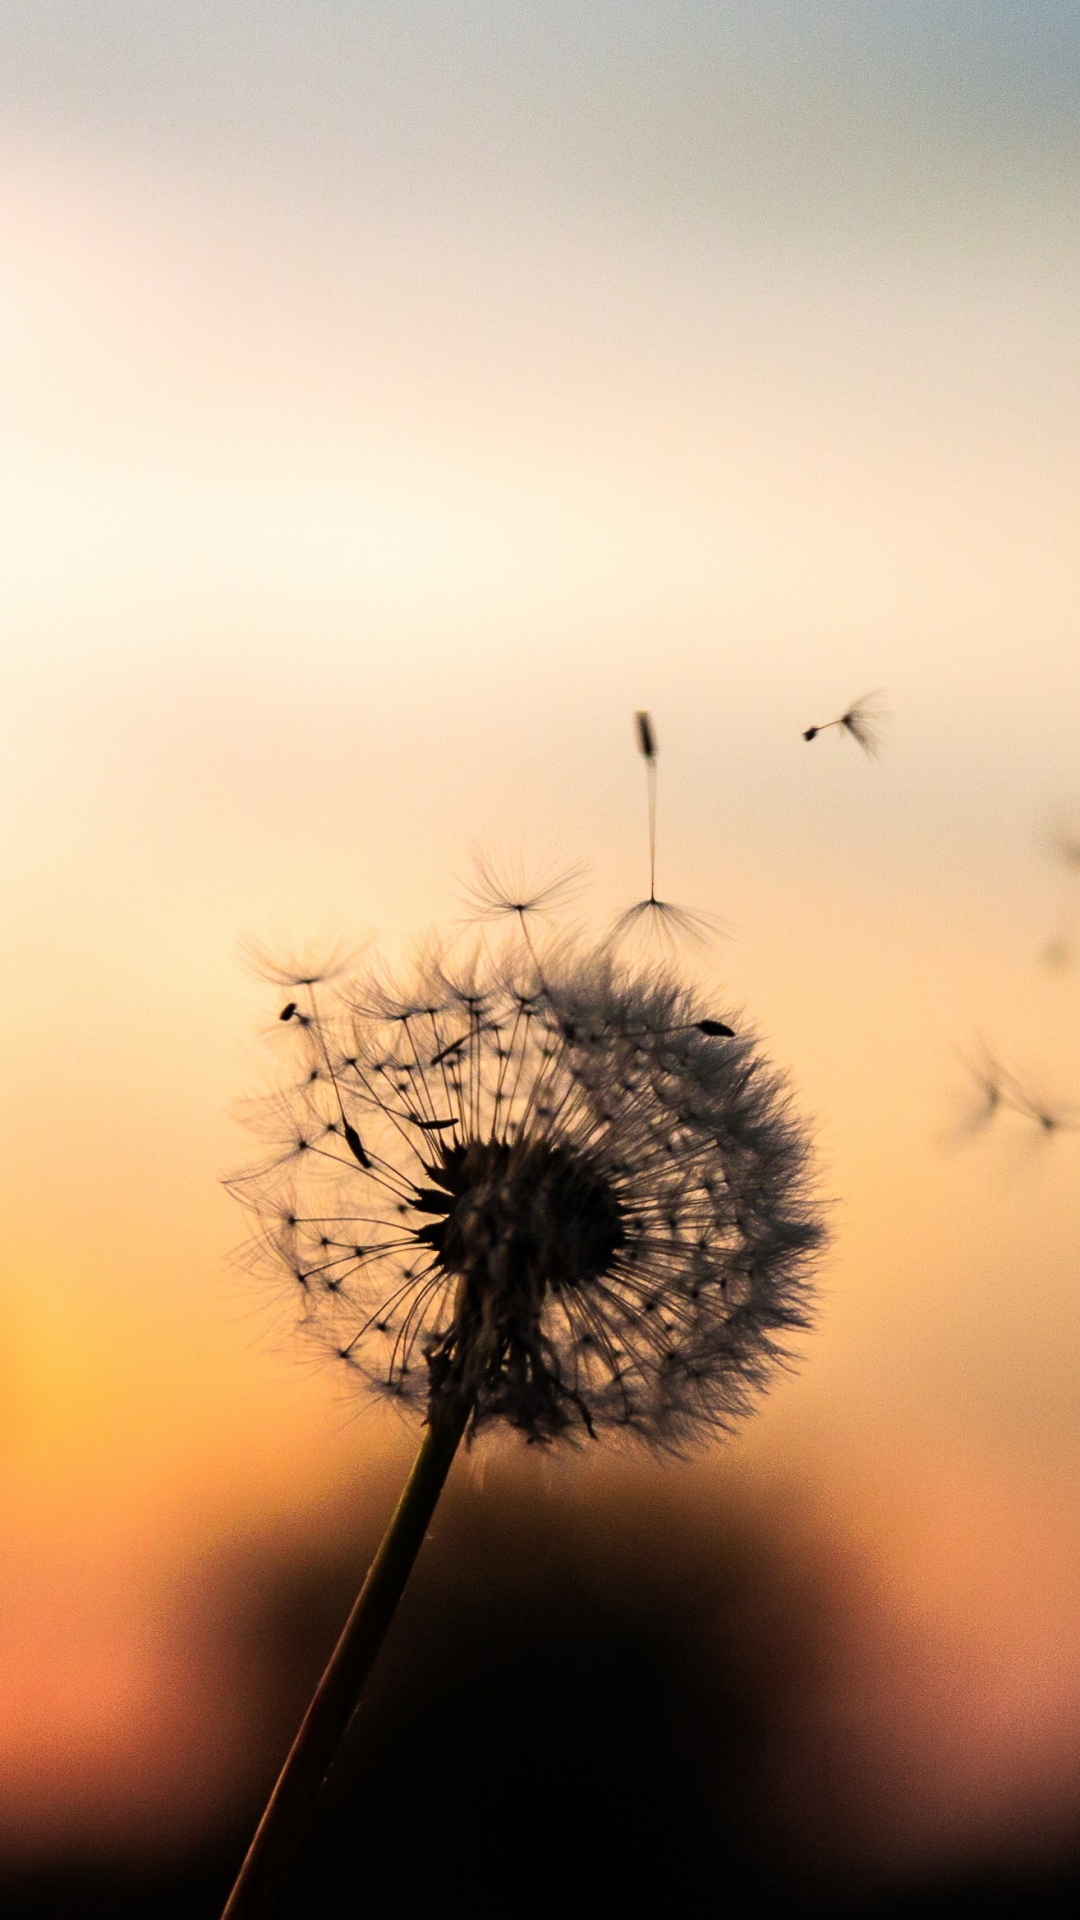 iphone wallpaper dandelion down 3Wallpapers : notre sélection de fonds d'écran du 02/11/2017